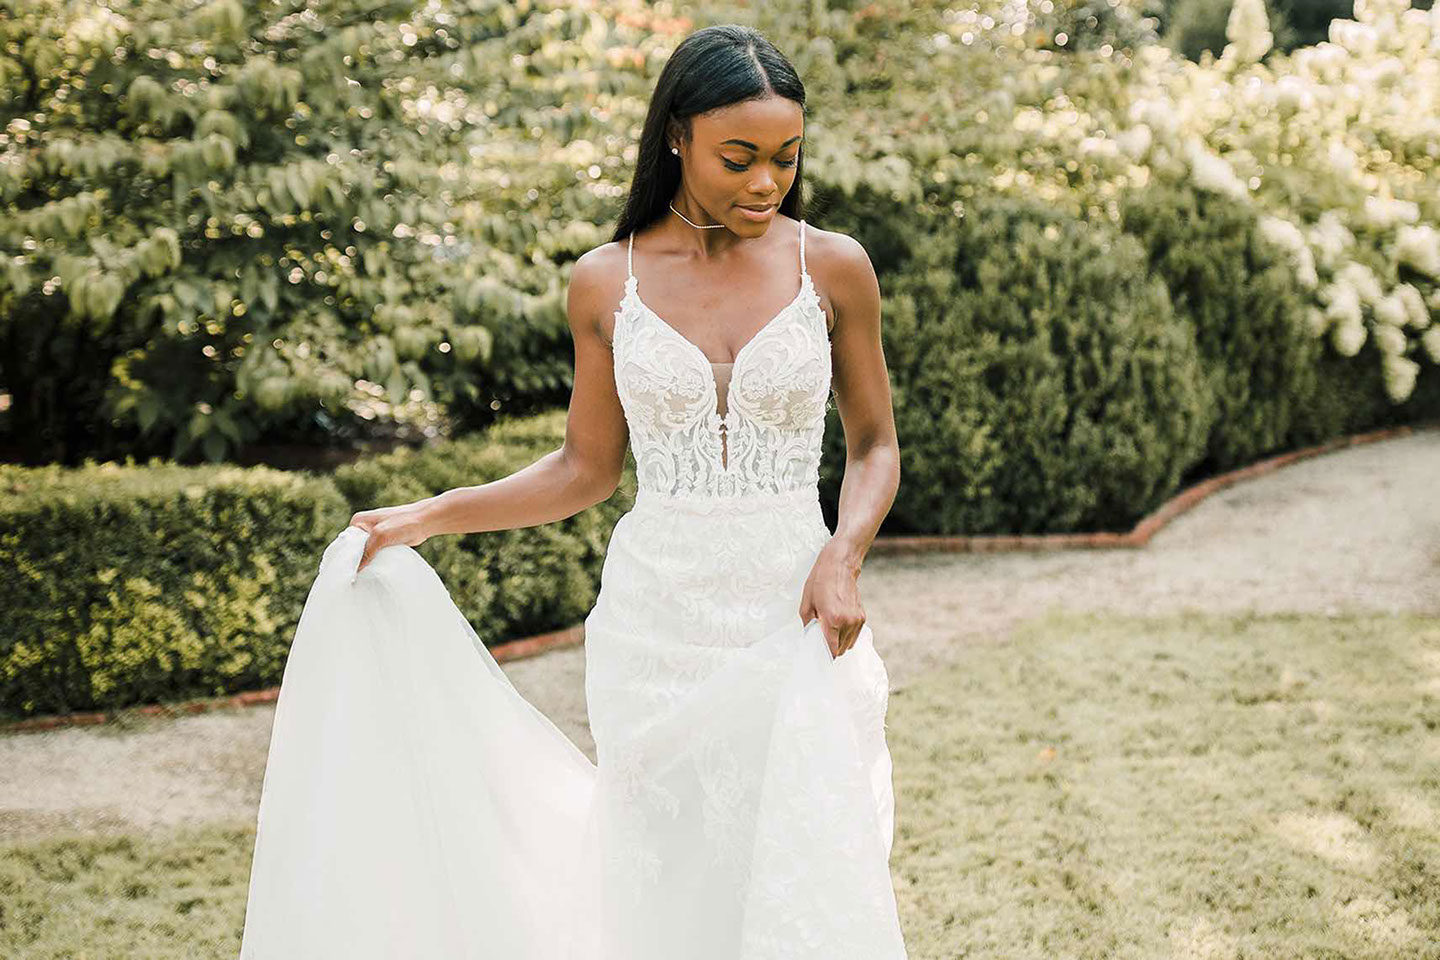 Bridal & Formal Boutique | Wedding Dresses In Gulfport, MS